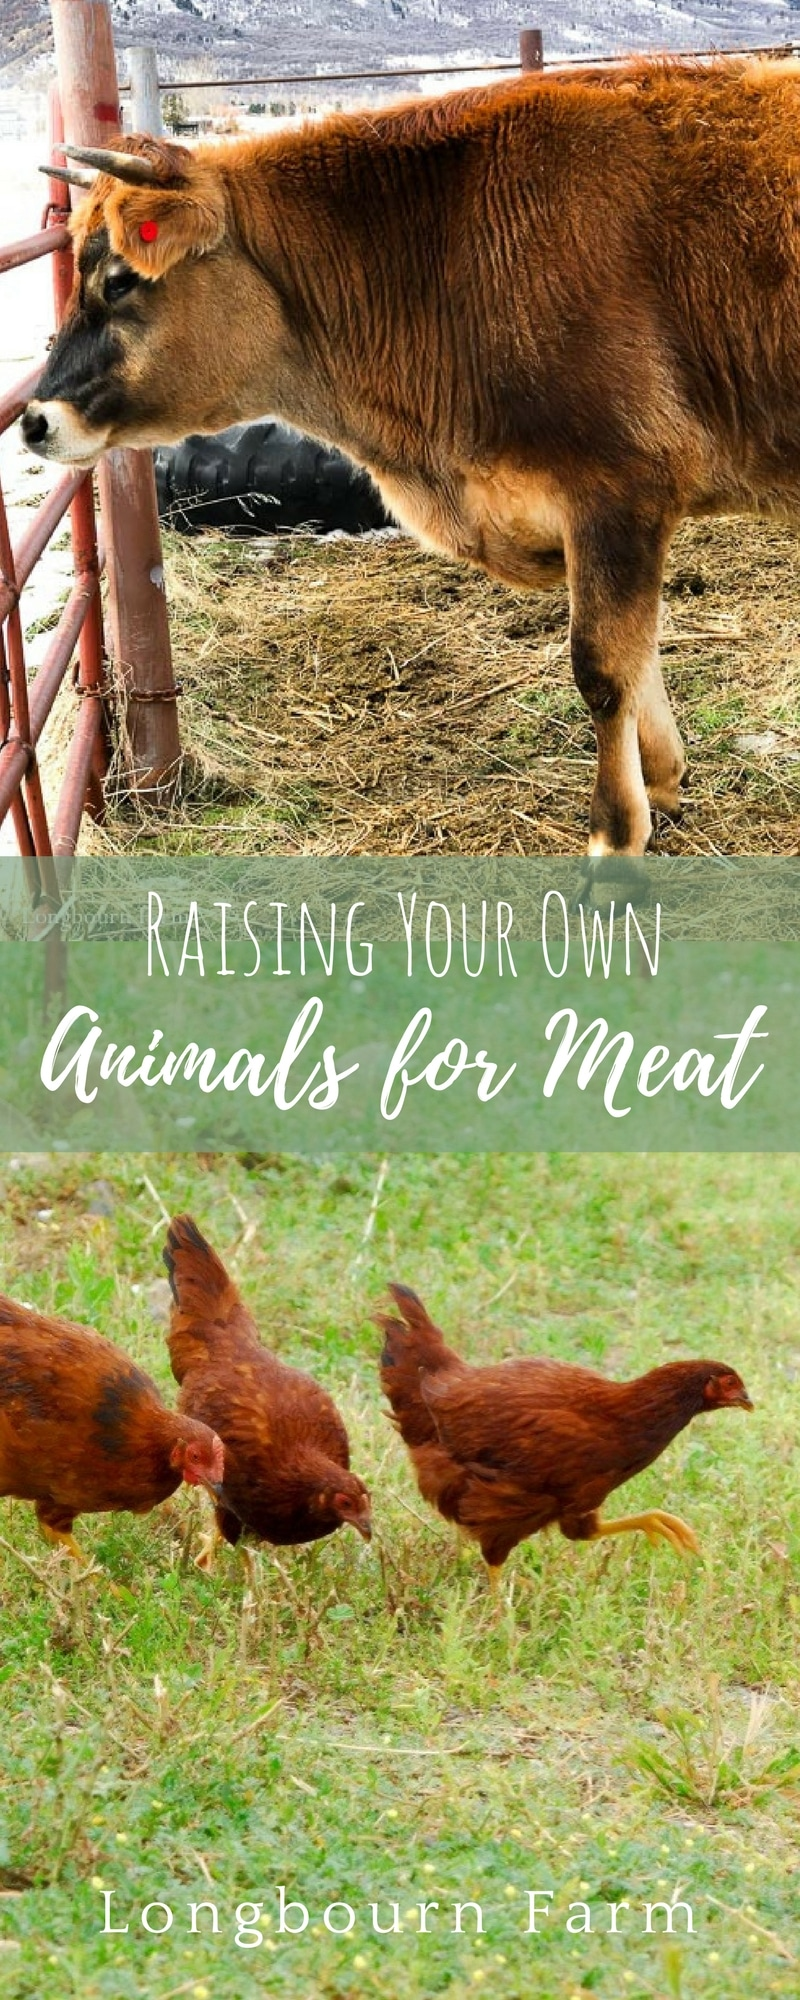 I often get asked how I am comfortable raising animals for food. Here is my long and honest answer about how we feel raising animals for food on our farm.